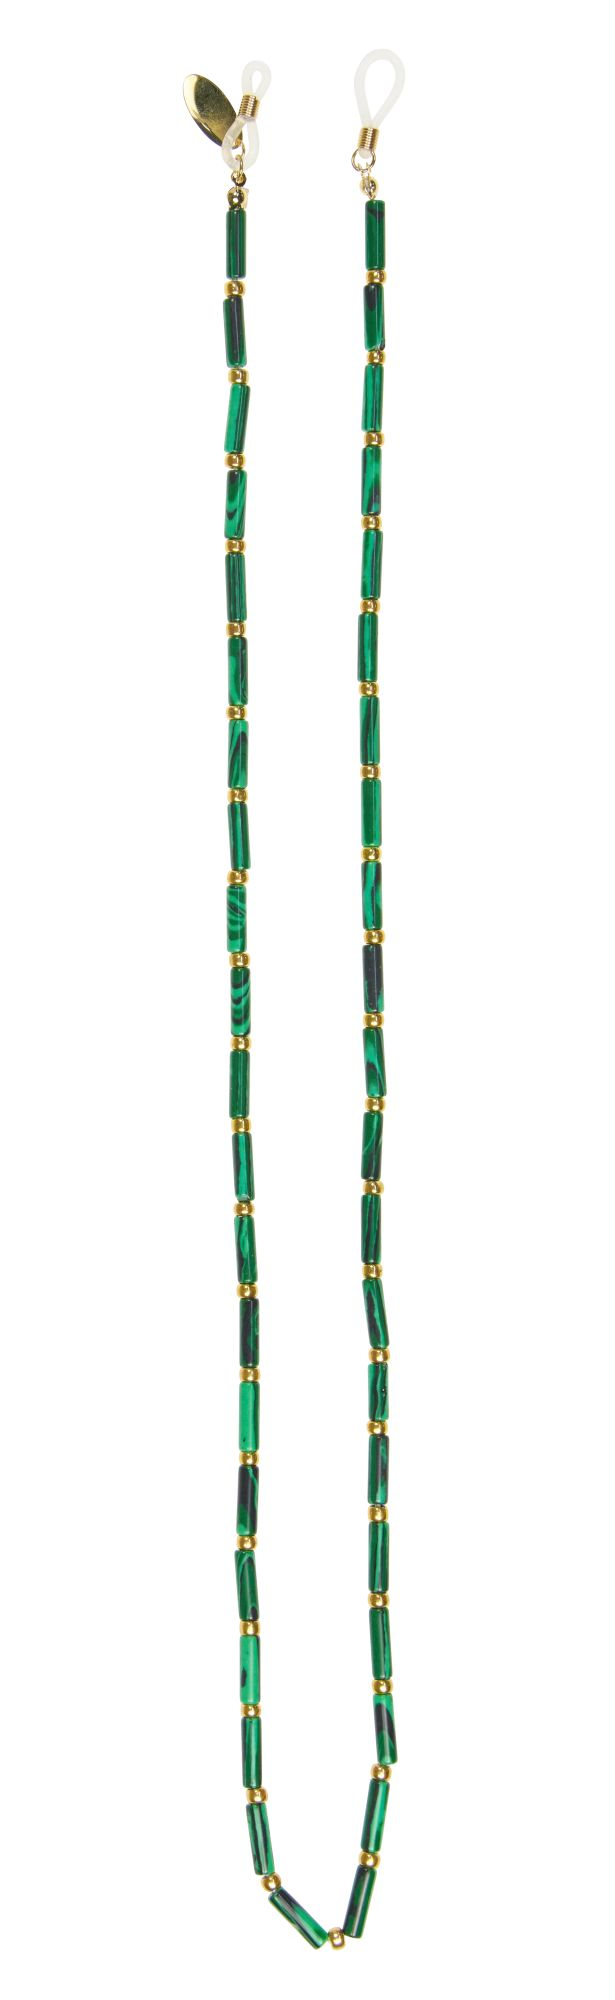 Sunnycords Dames Accessoires